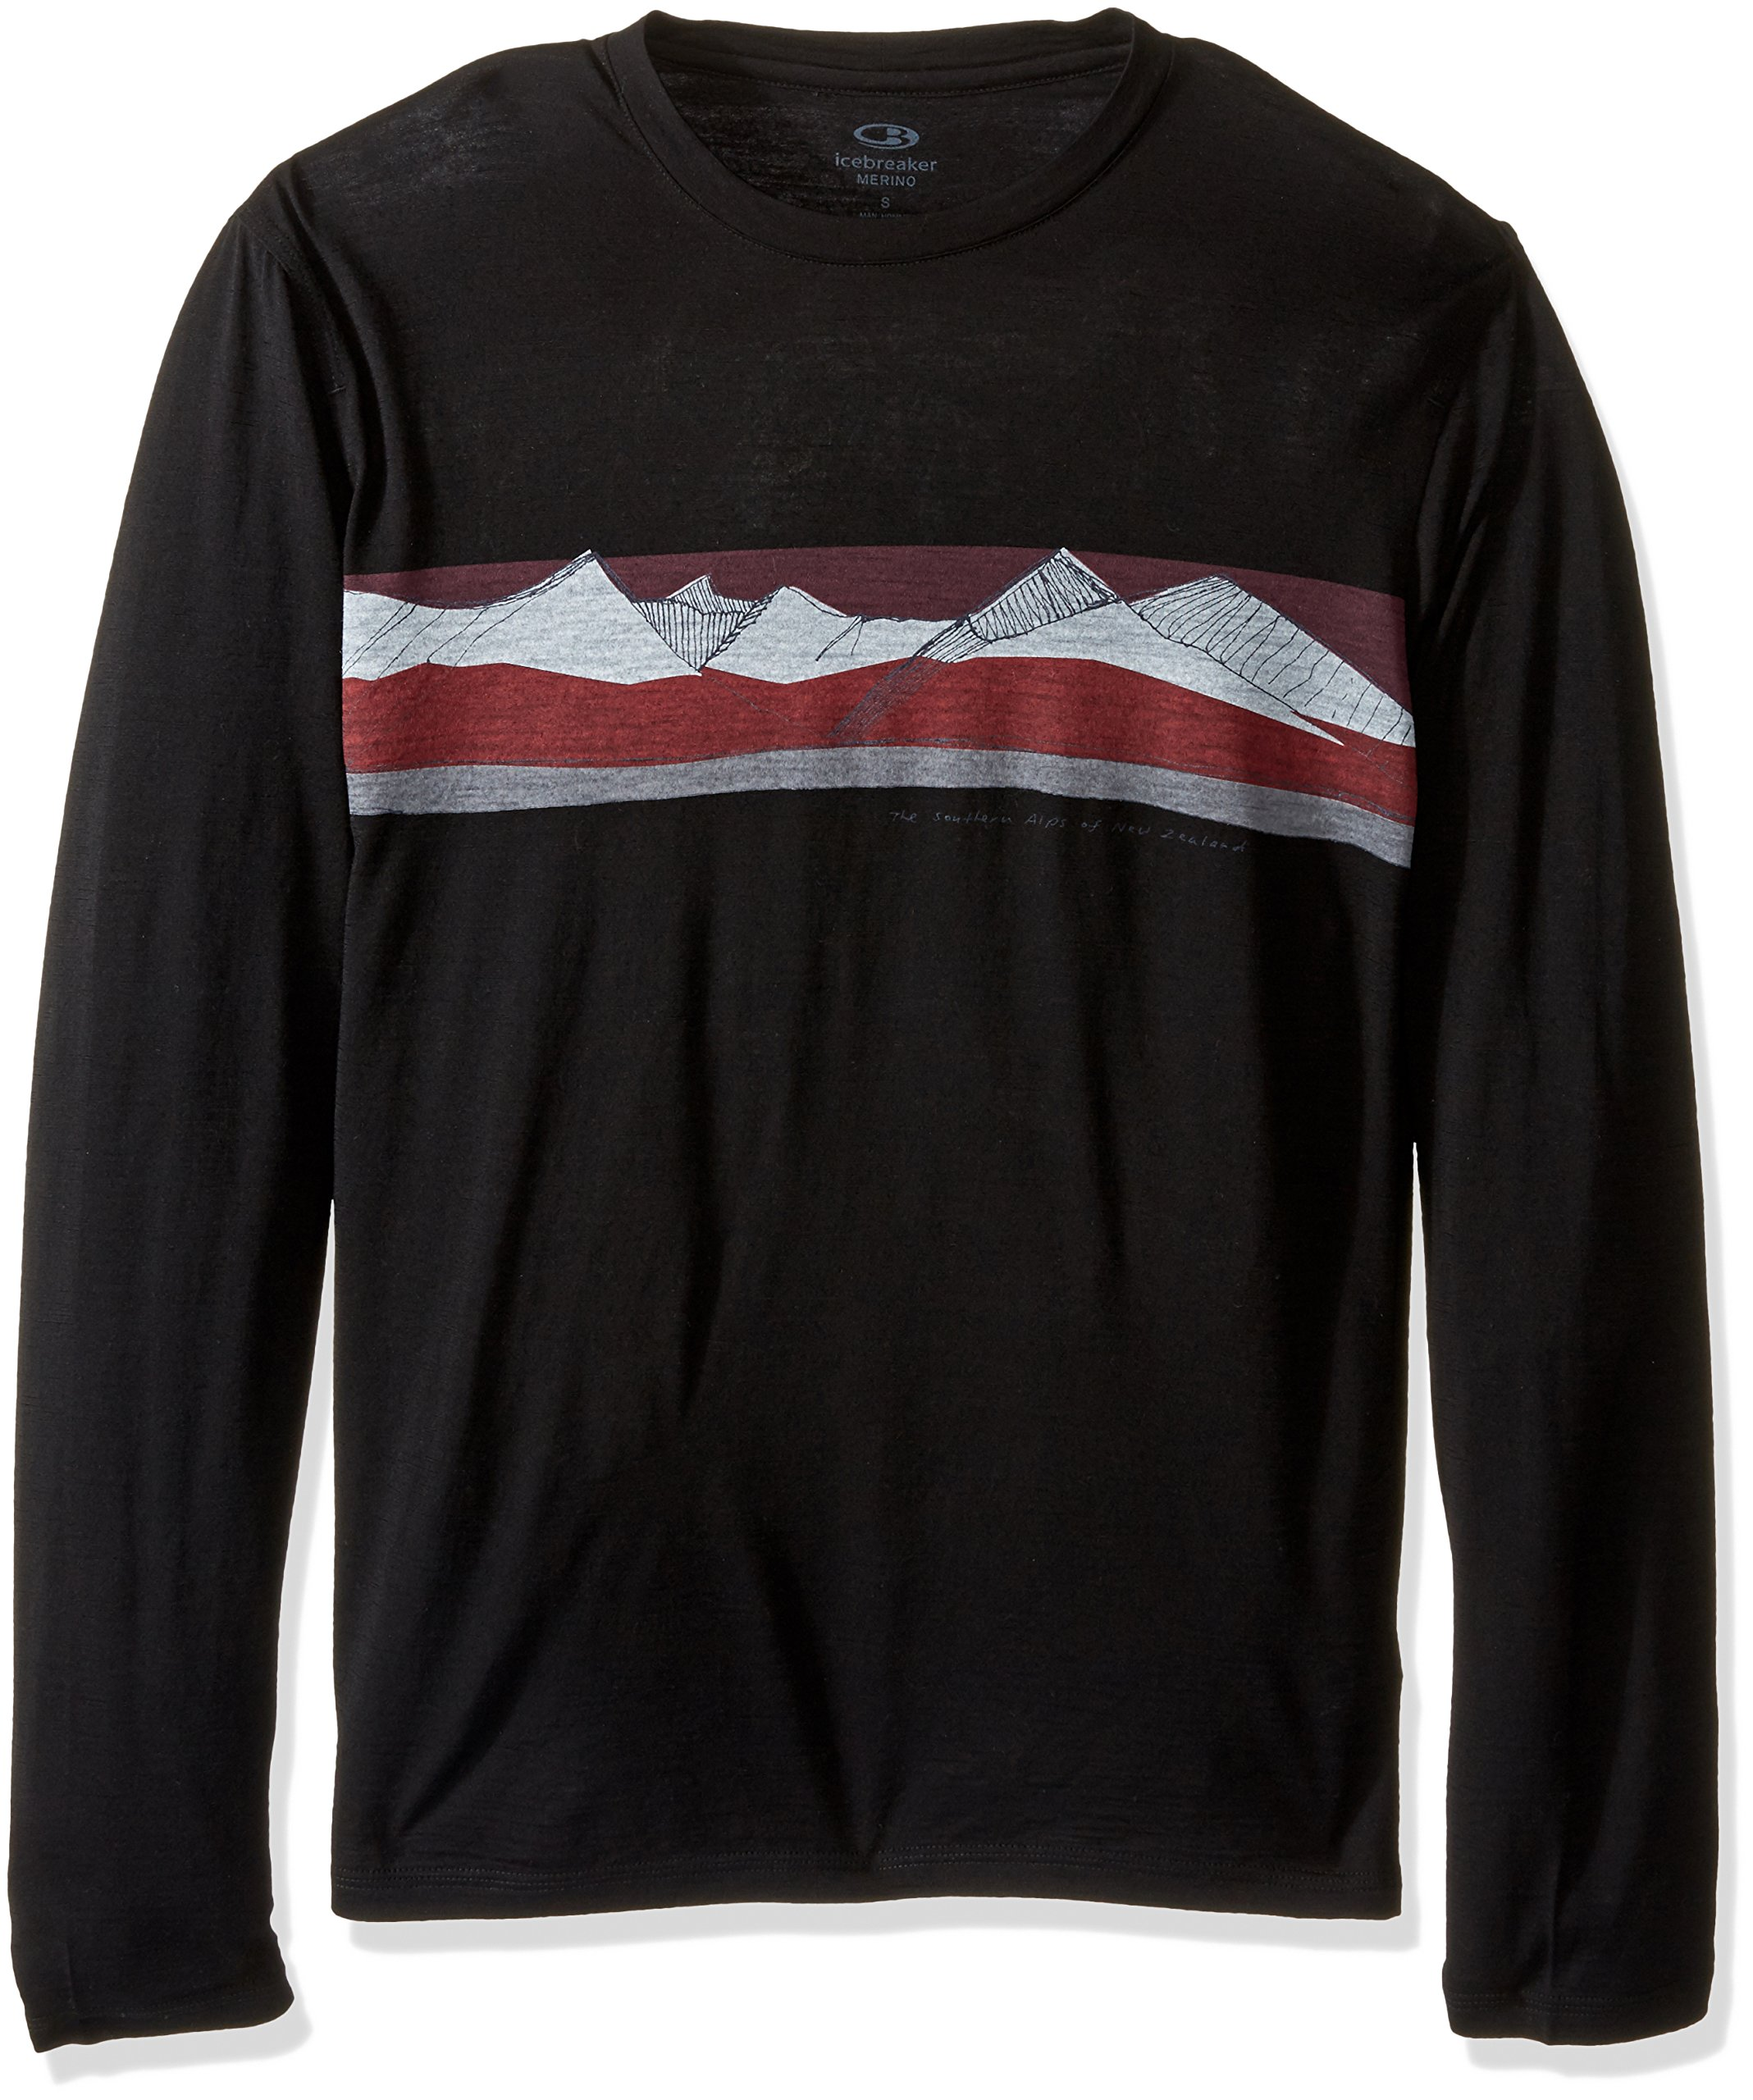 Icebreaker Merino Men's Tech Lite Long Sleeve South Alps Graphic Crewe T-Shirt, Black/Redwood, Large